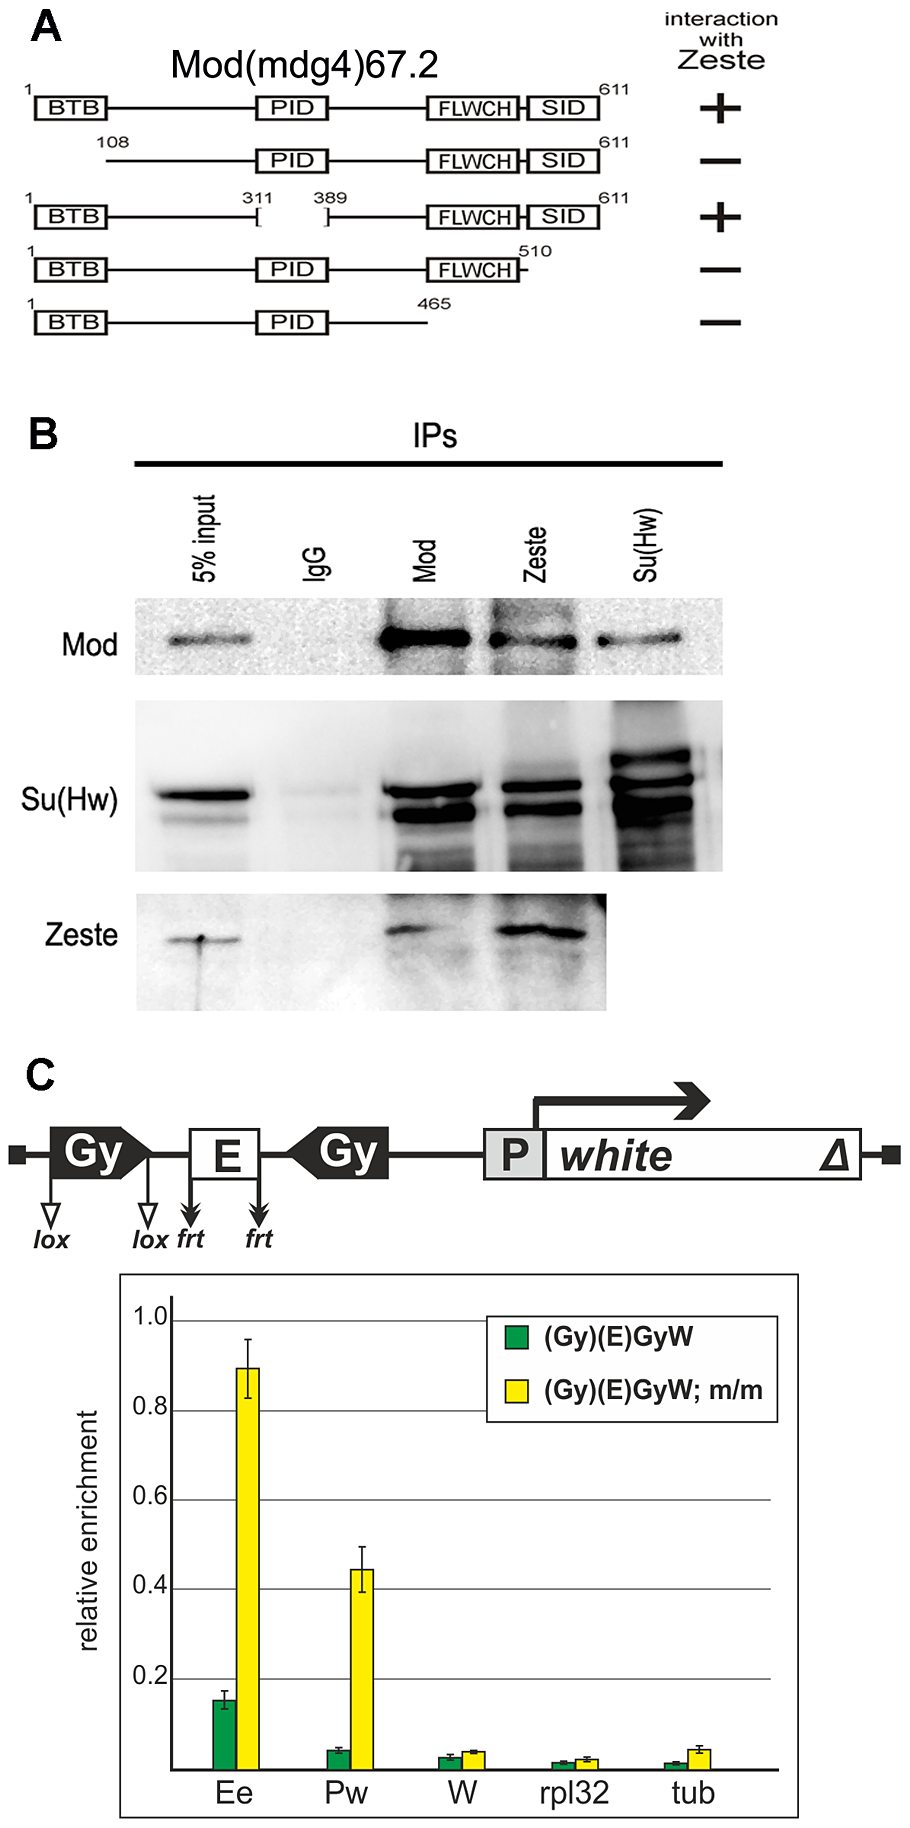 Testing for the interaction between the Mod(mdg4)-67.2 and Zeste proteins.